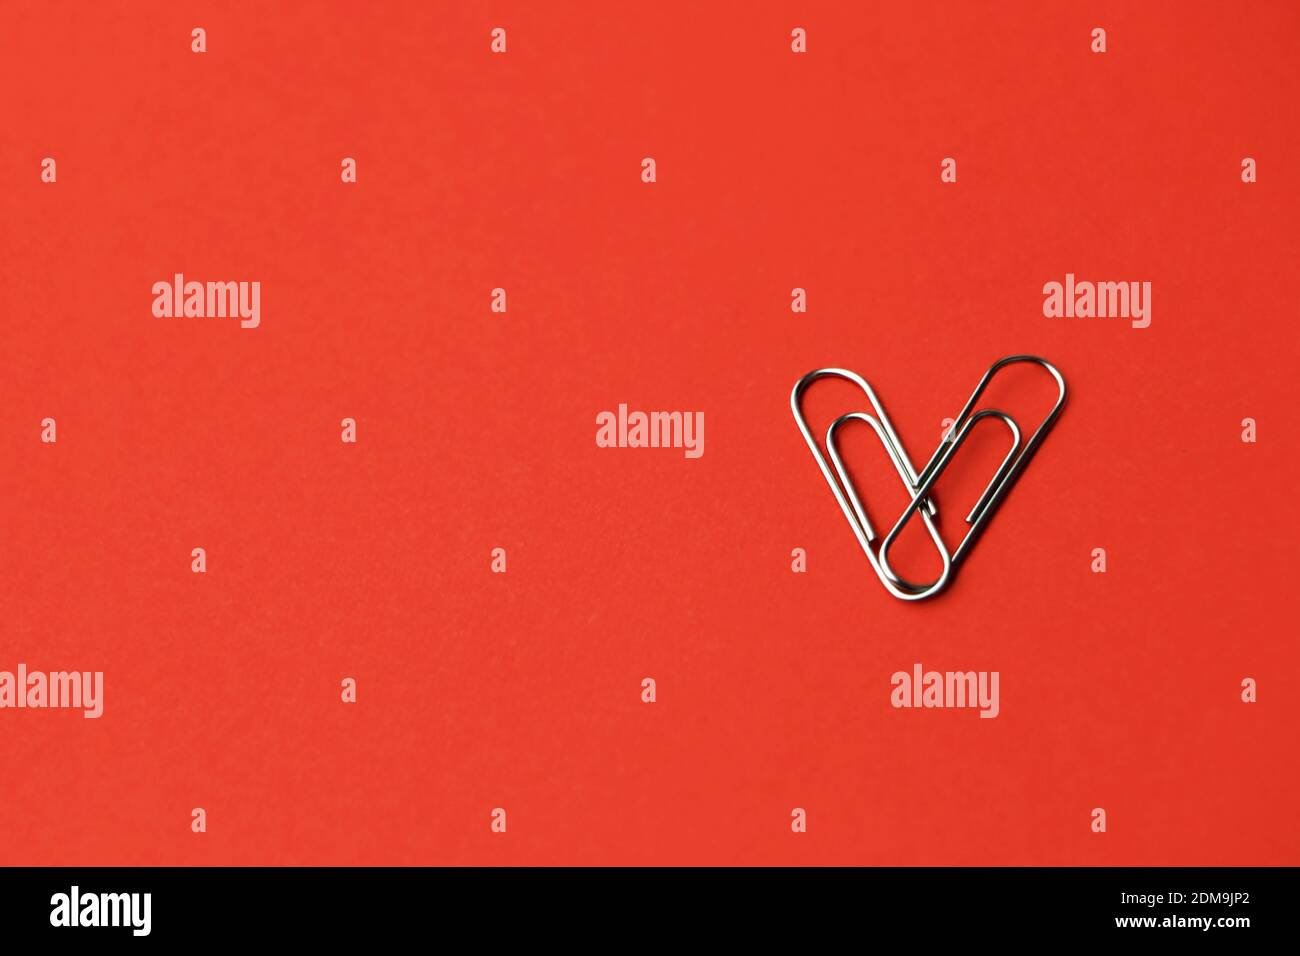 Heart shape paper clips on a red background. Valentine's day concept. High quality photo Stock Photo